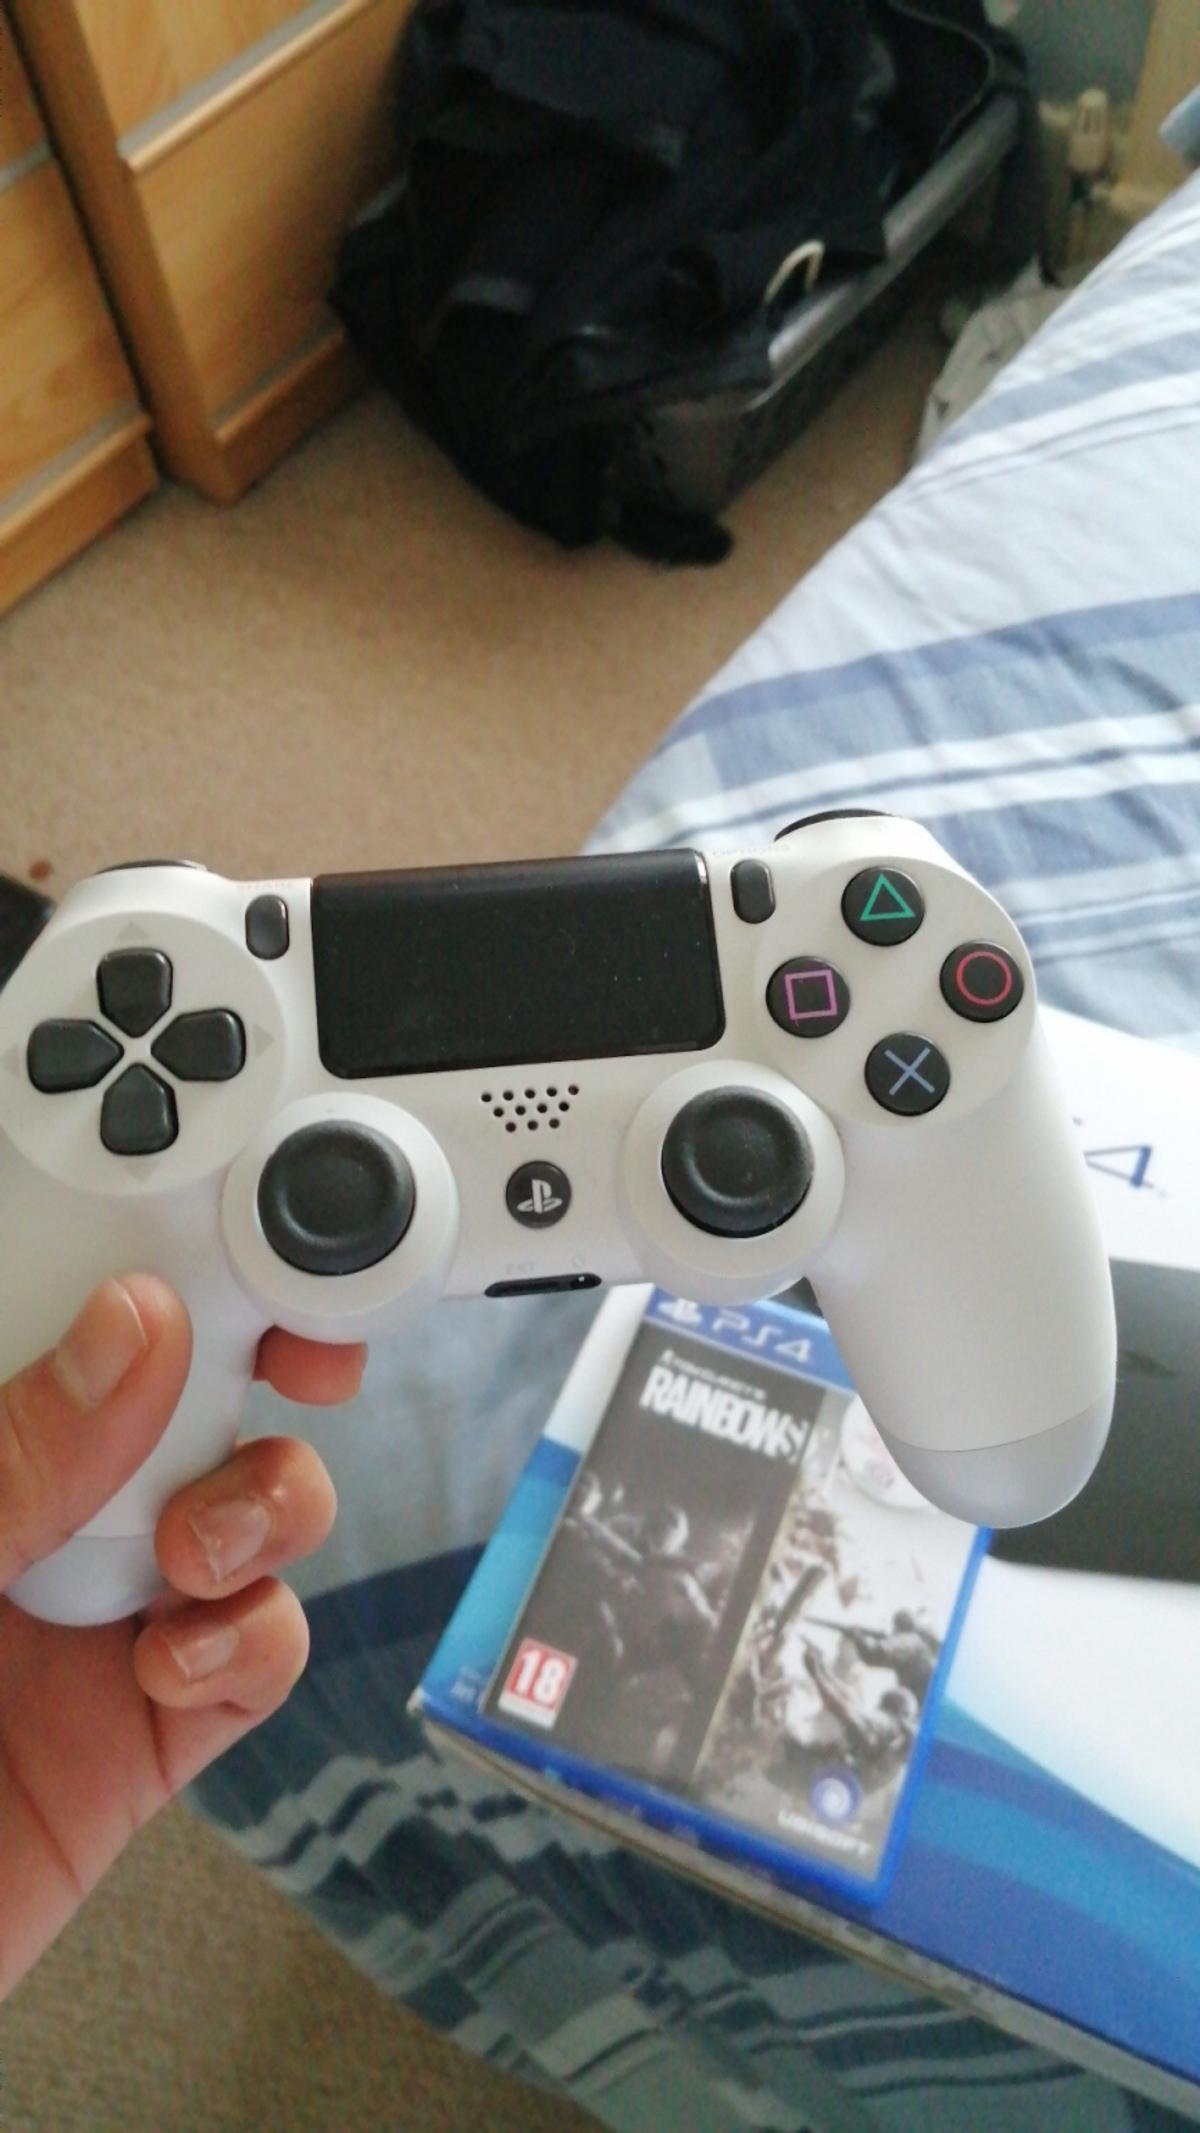 Mint condition used handful of times fully reset and ready to go. comes with all leads brand new and unused, white controller slightly used and a copy of rainbow six siege.